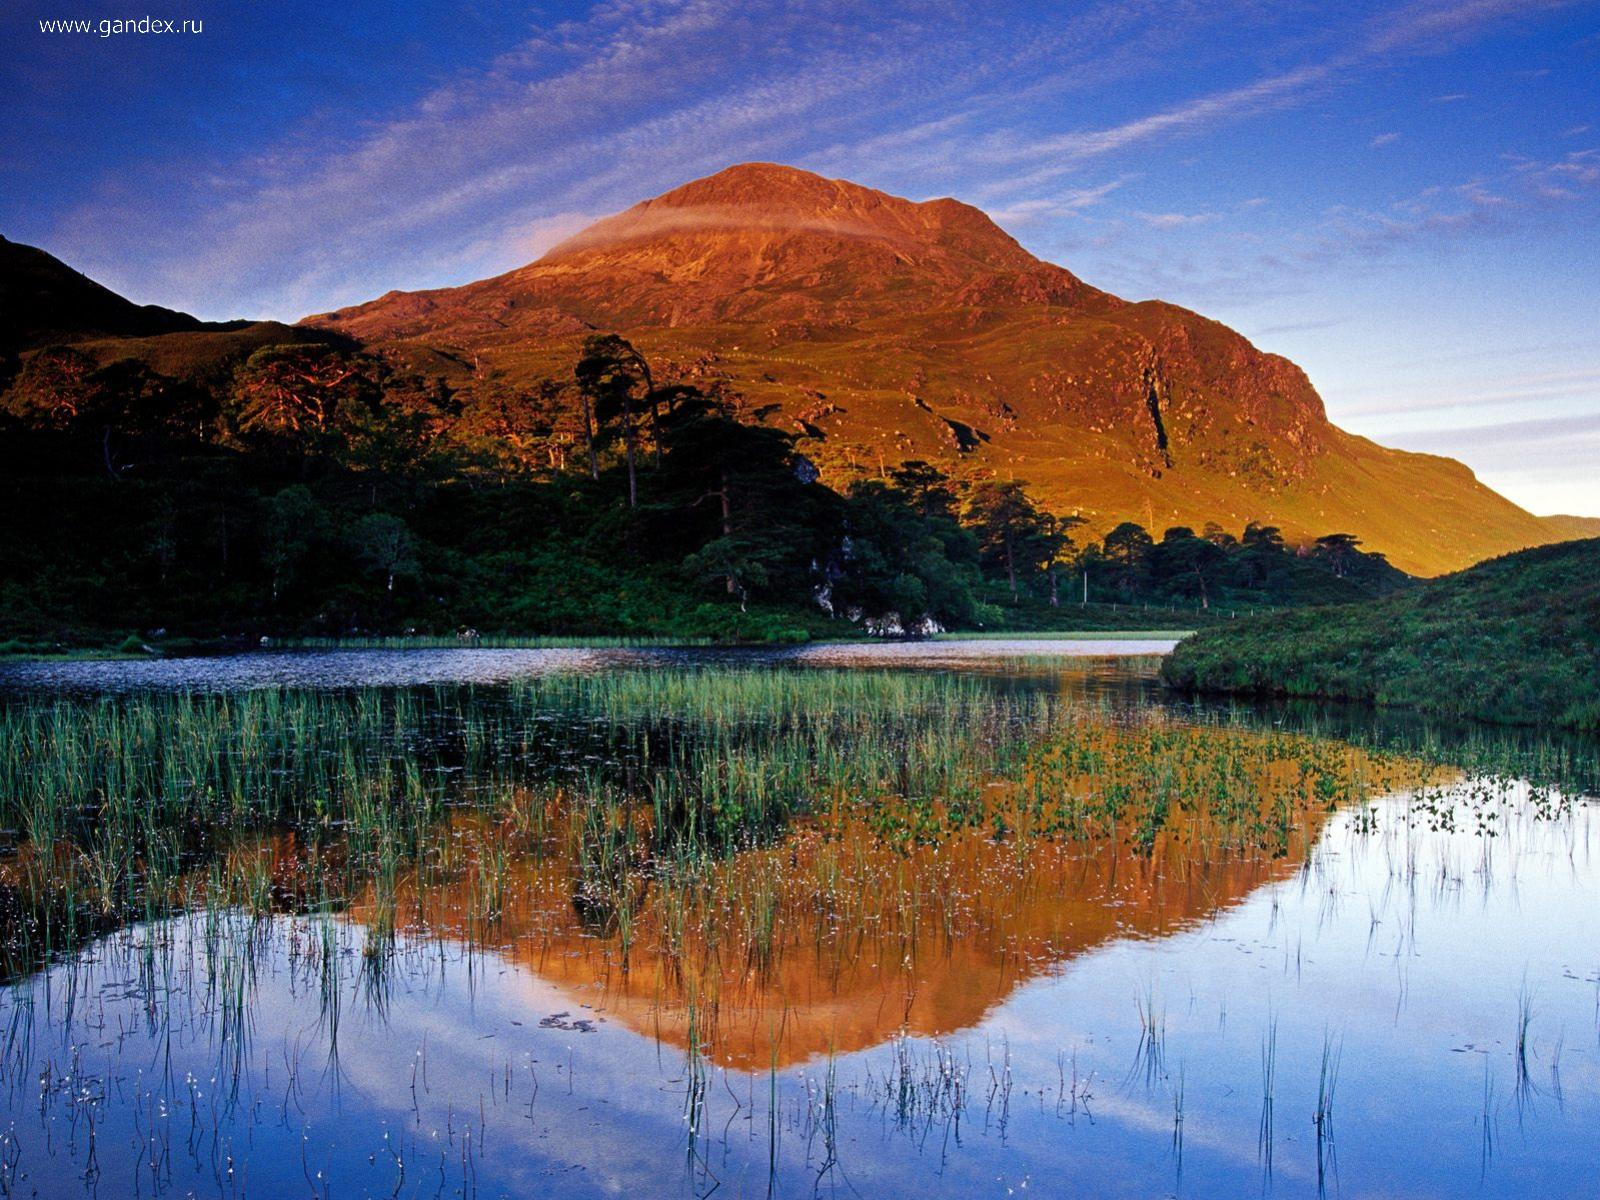 Lake and hills in Scotland, is really very beautiful photos on your desktop.